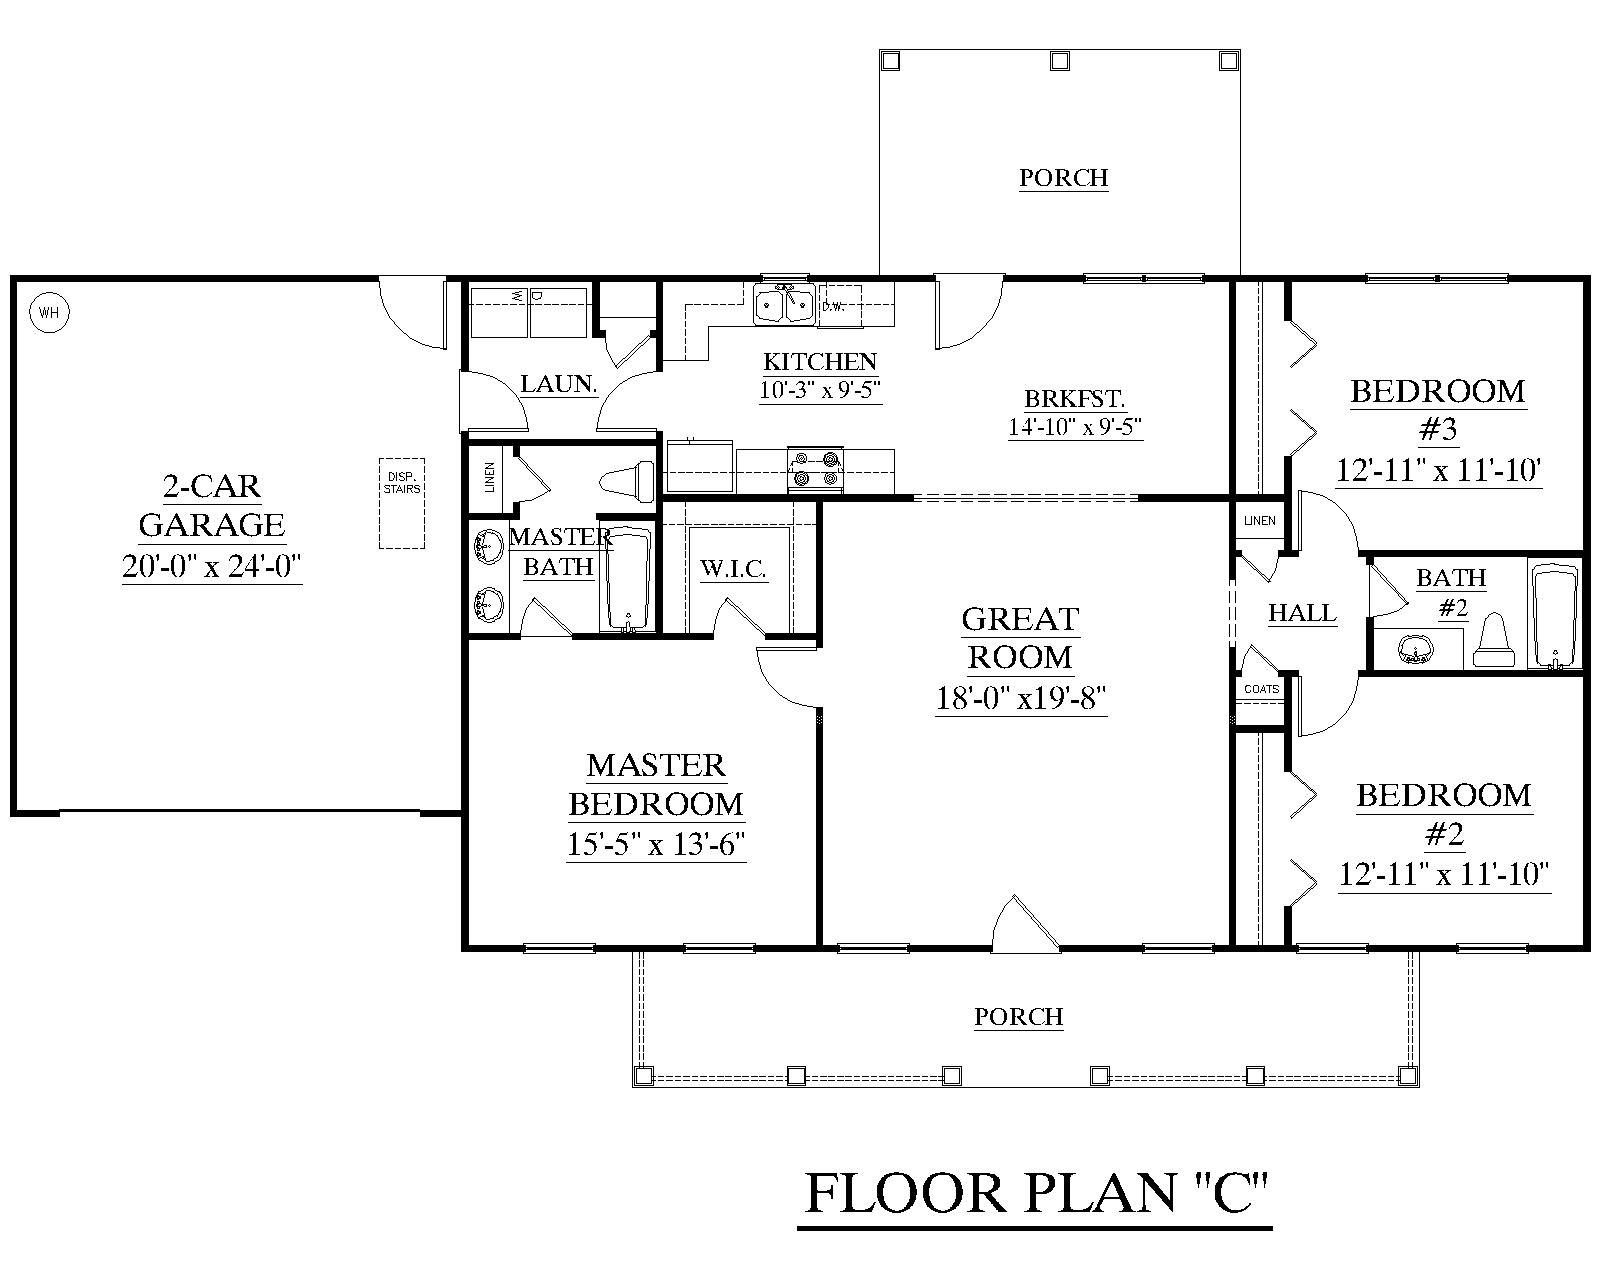 House plan 1500 c the james c attractive one story ranch for One story ranch plans